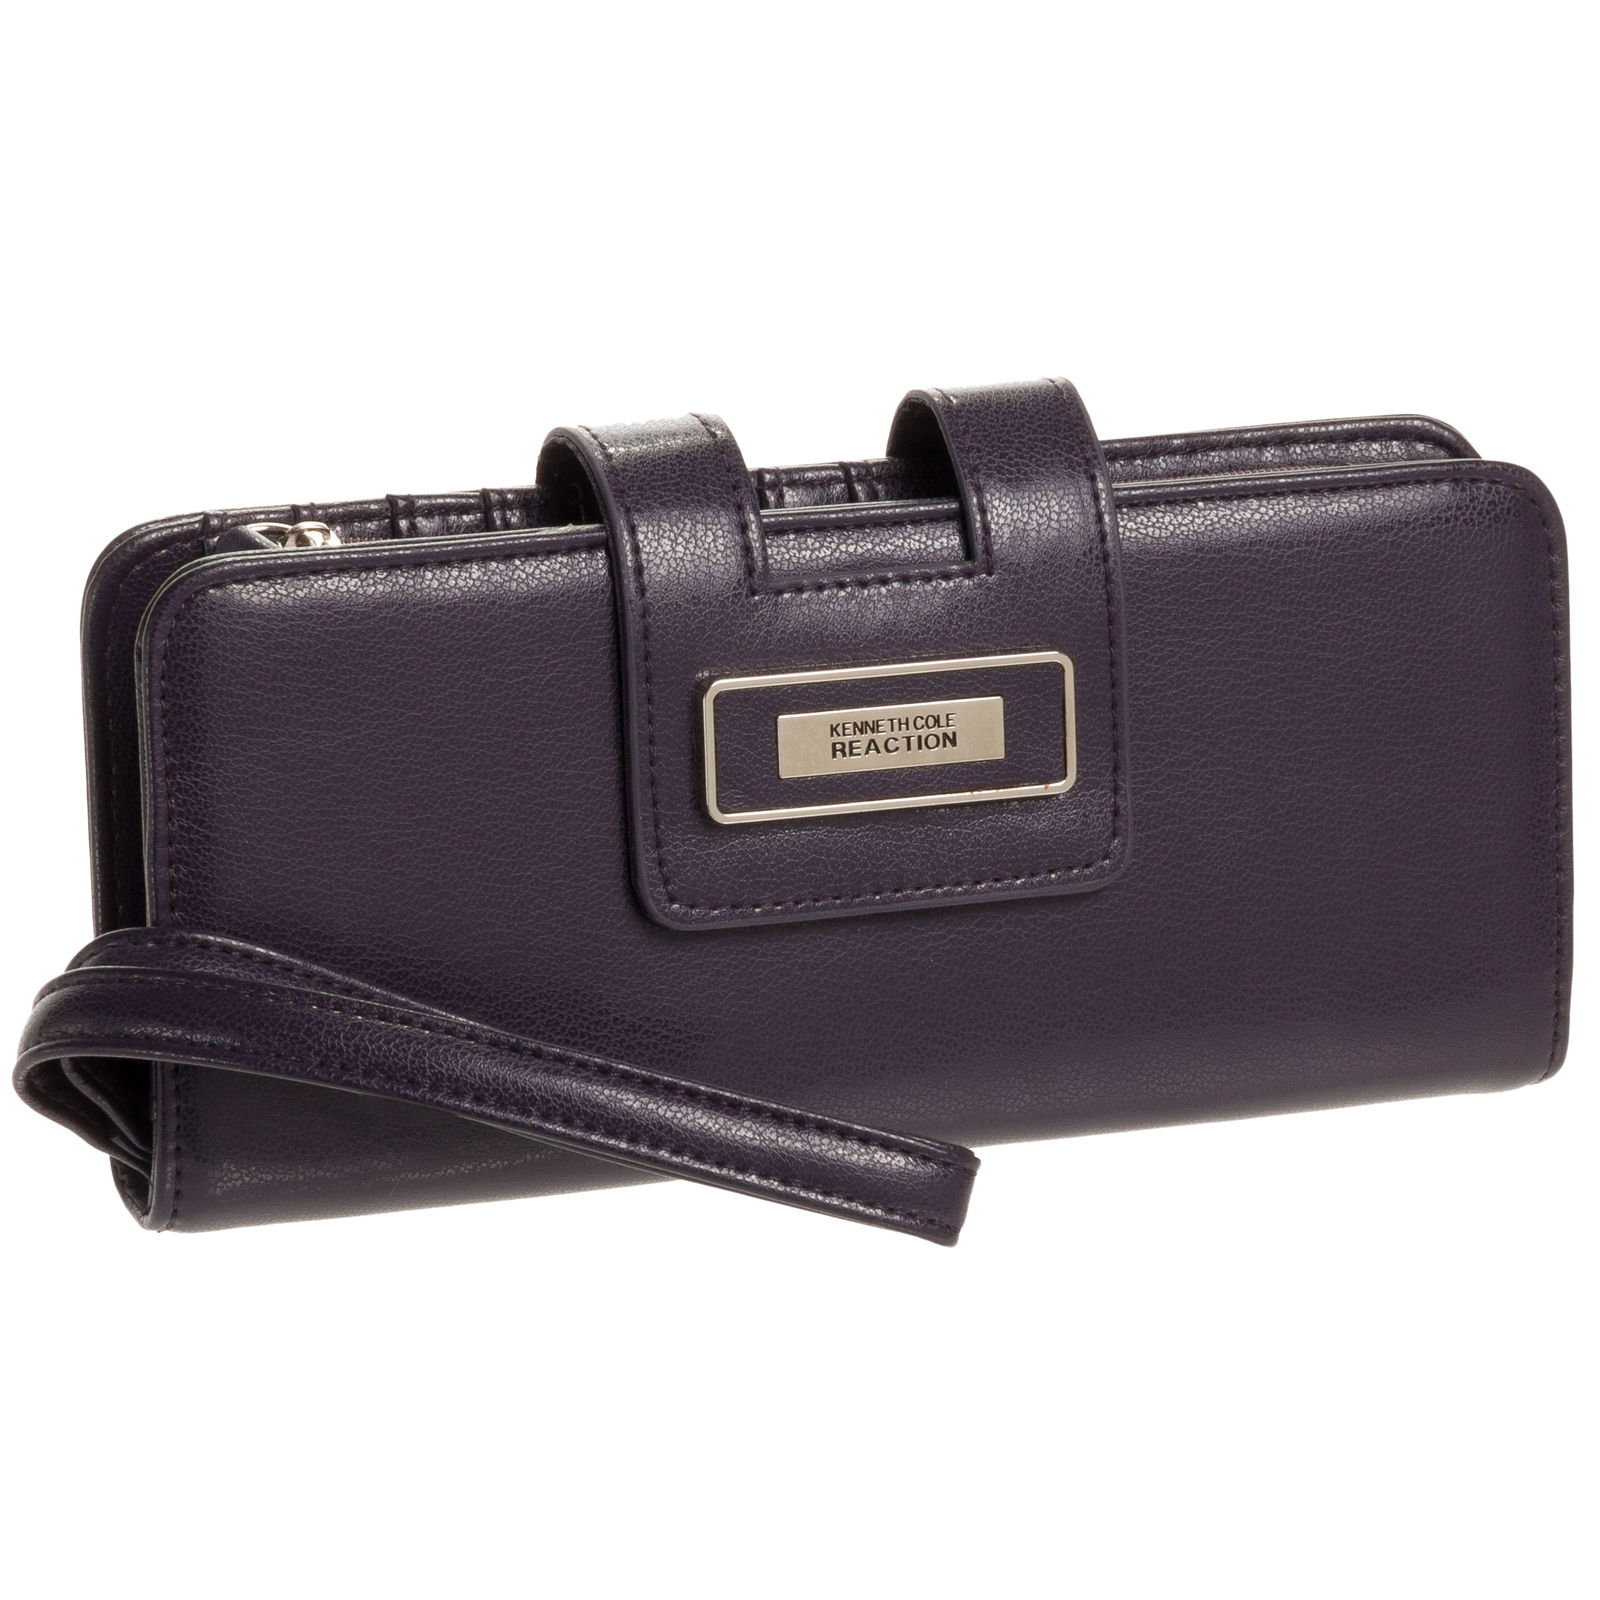 Kenneth cole reaction wallet womens kenneth cole reaction womens